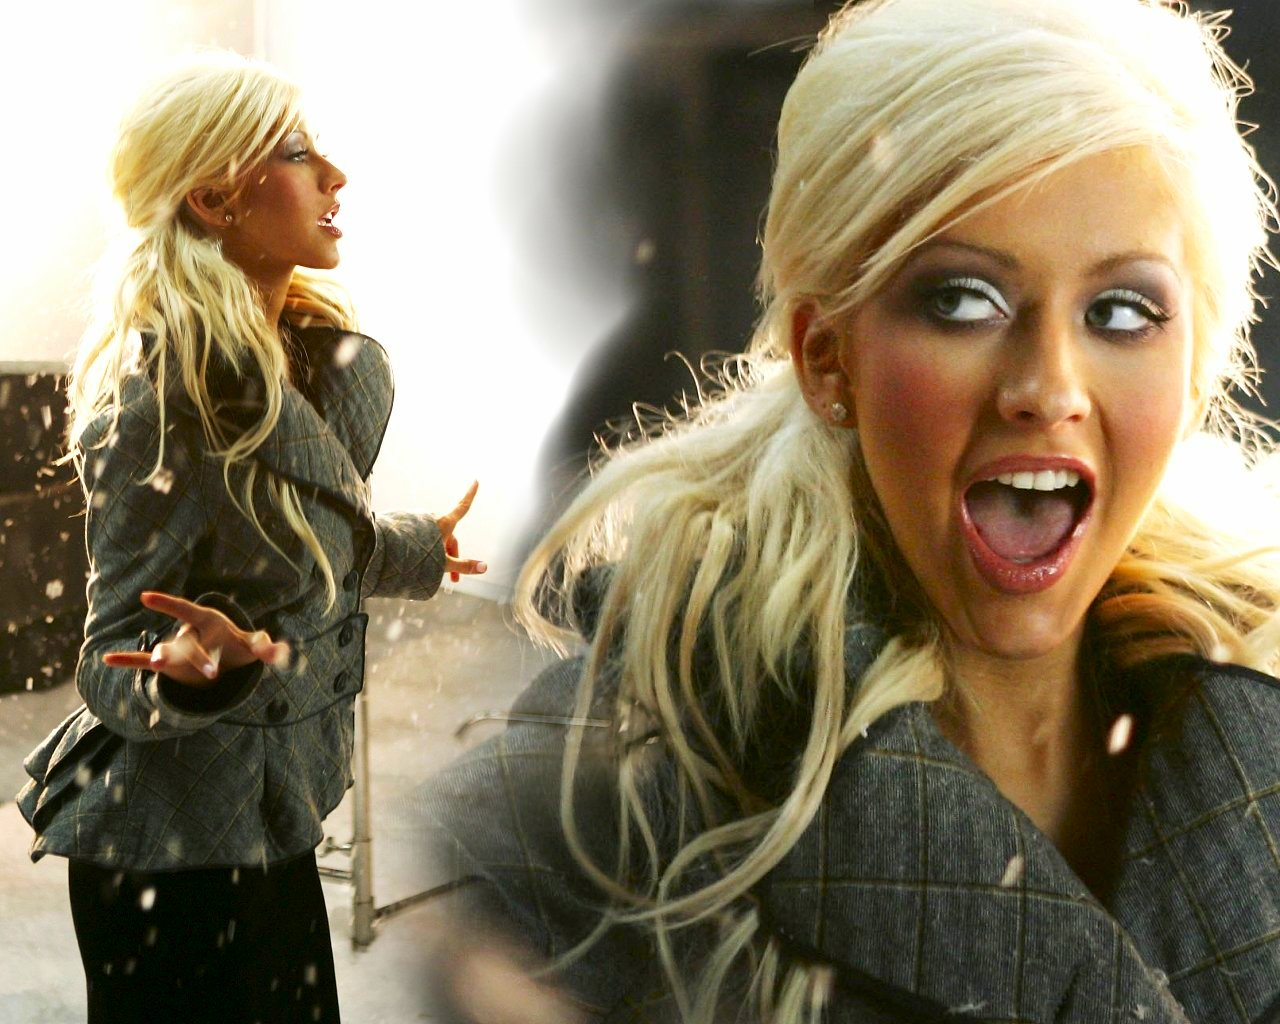 christina aguilera Christina aguilera (born december 18, 1980) is an american pop singer- songwriter she is known for her vocal abilities as well as her unorthodox sense  of.